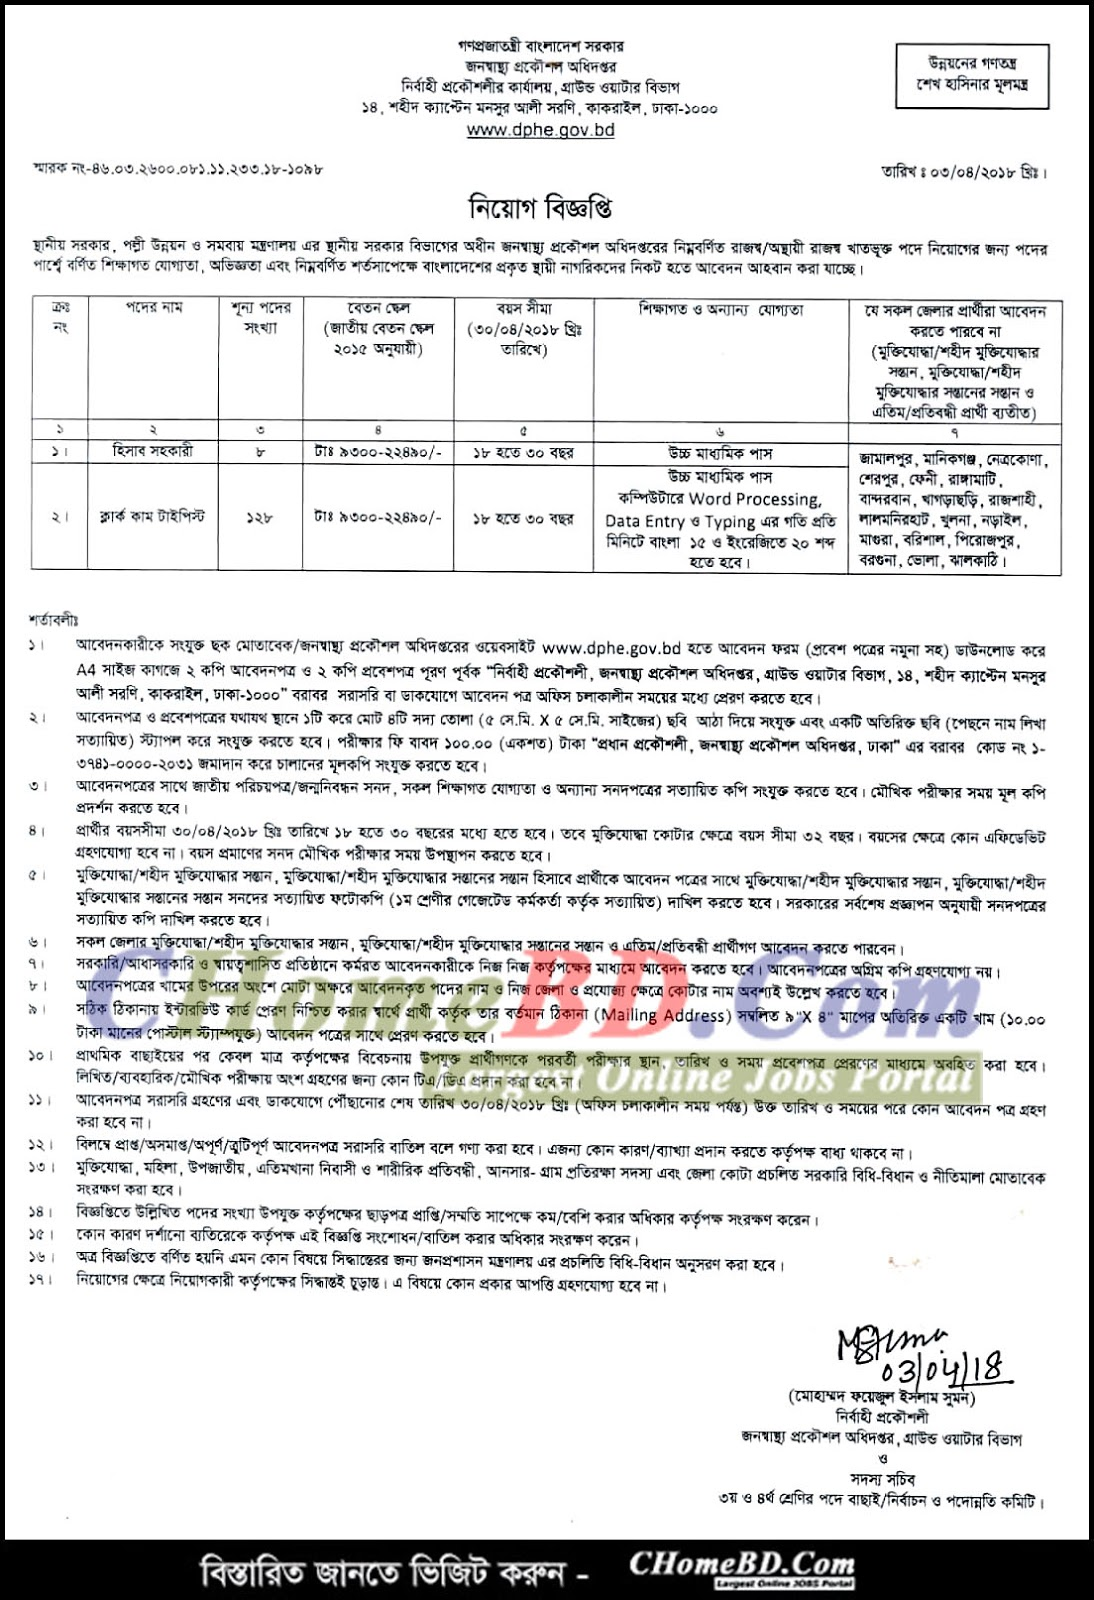 Department of Public Health Engineering (DPHE) Job Circular 2018